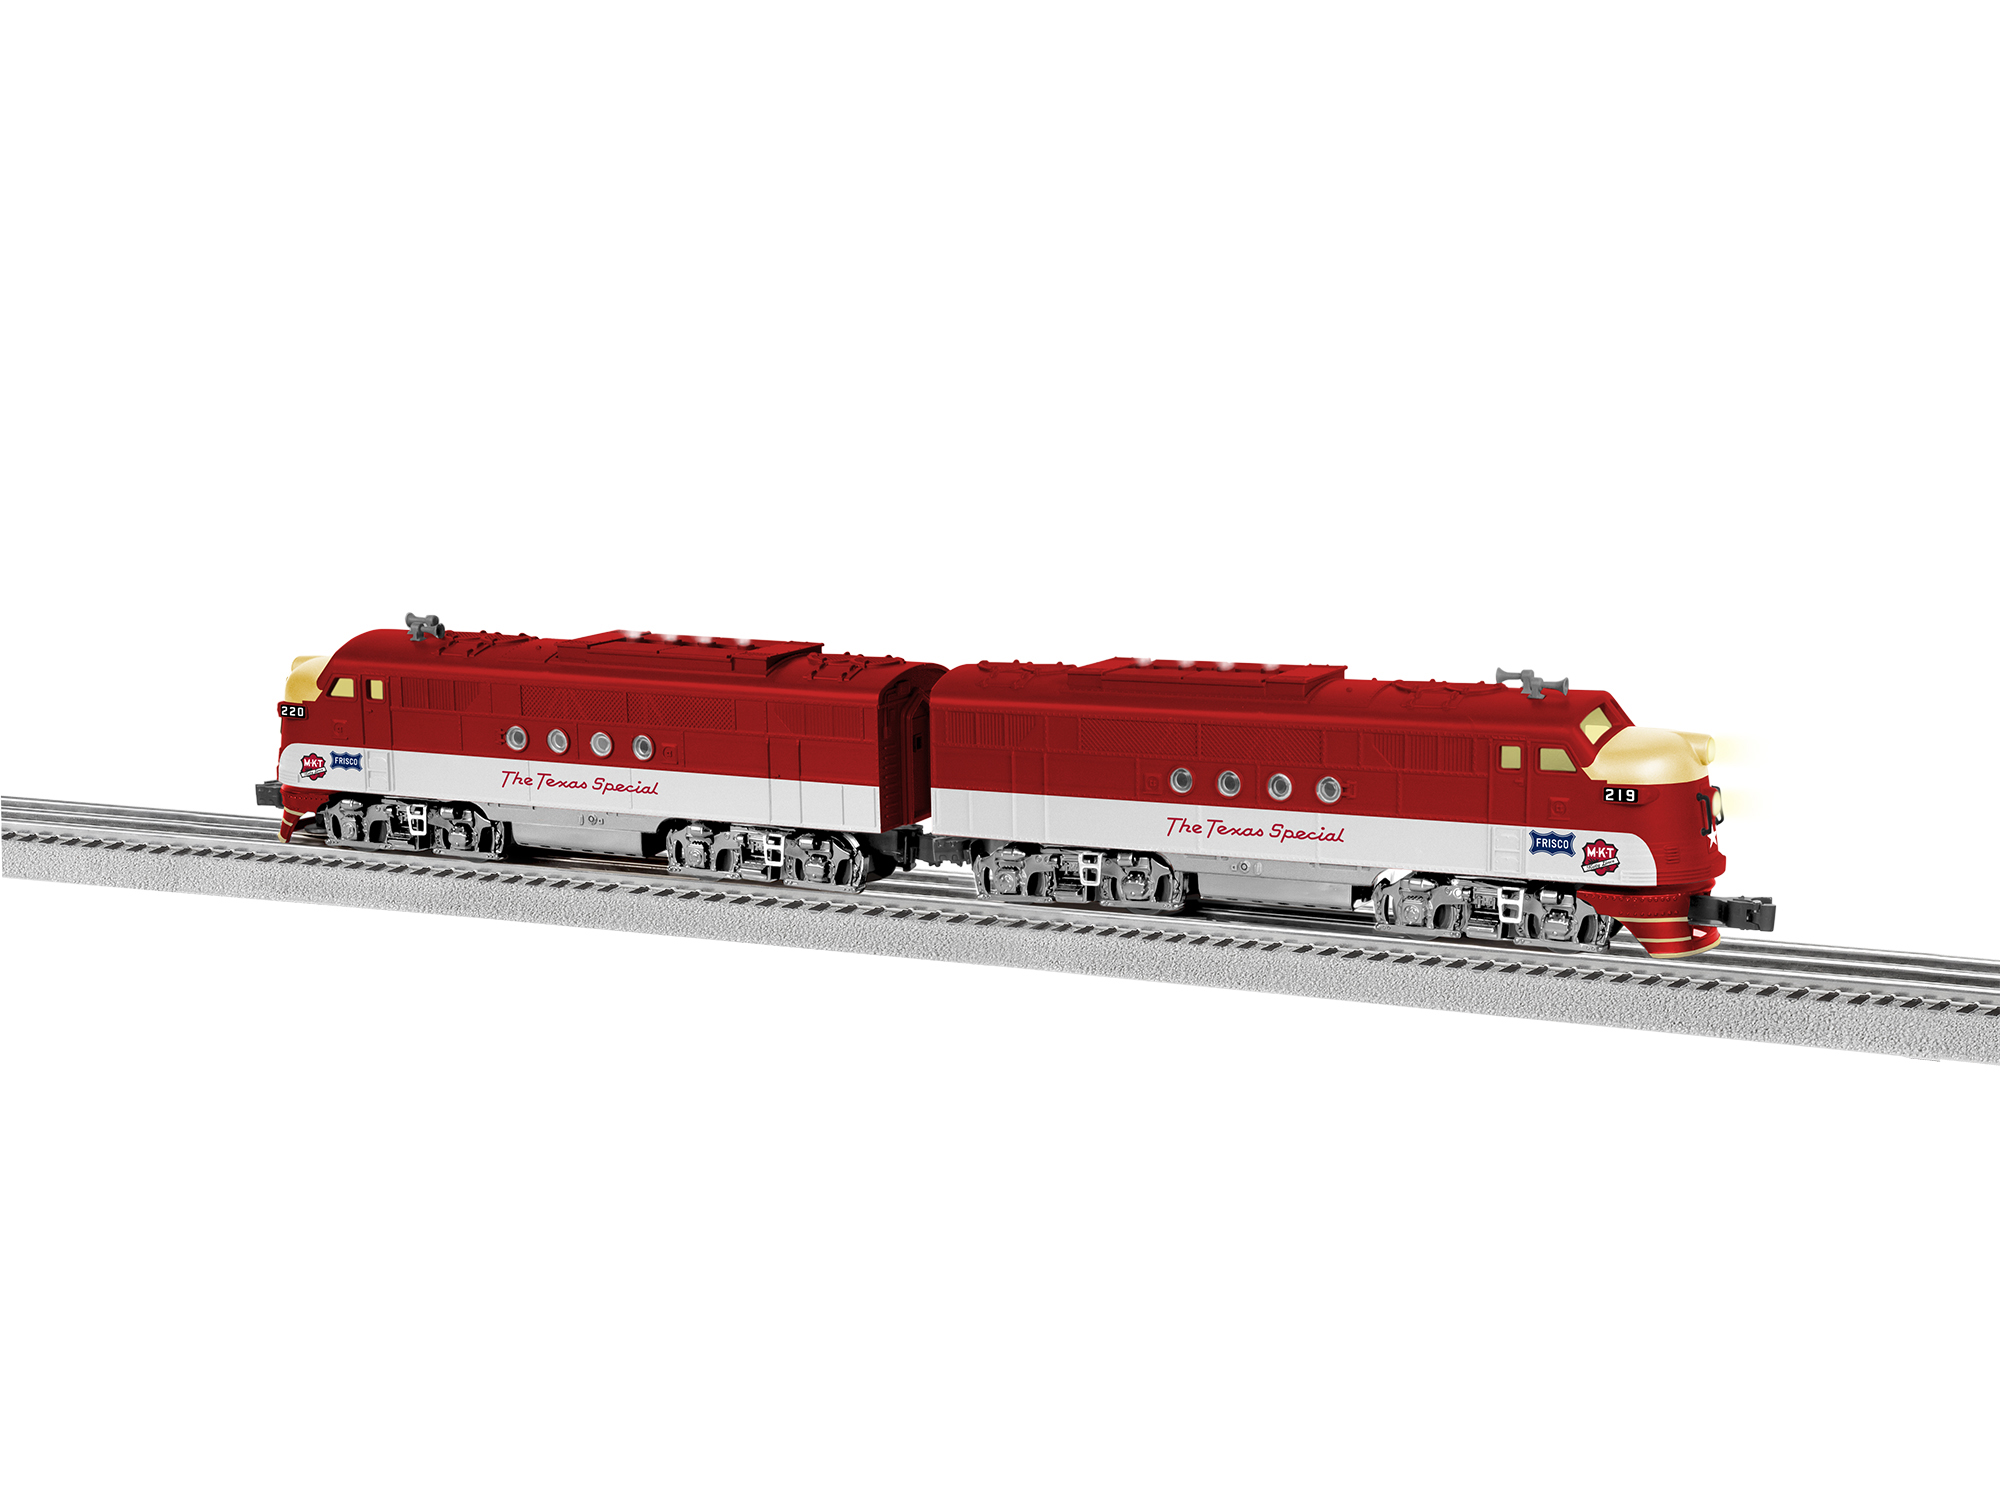 LNL1934120 Lionel O-31 FT AA, Texas Special